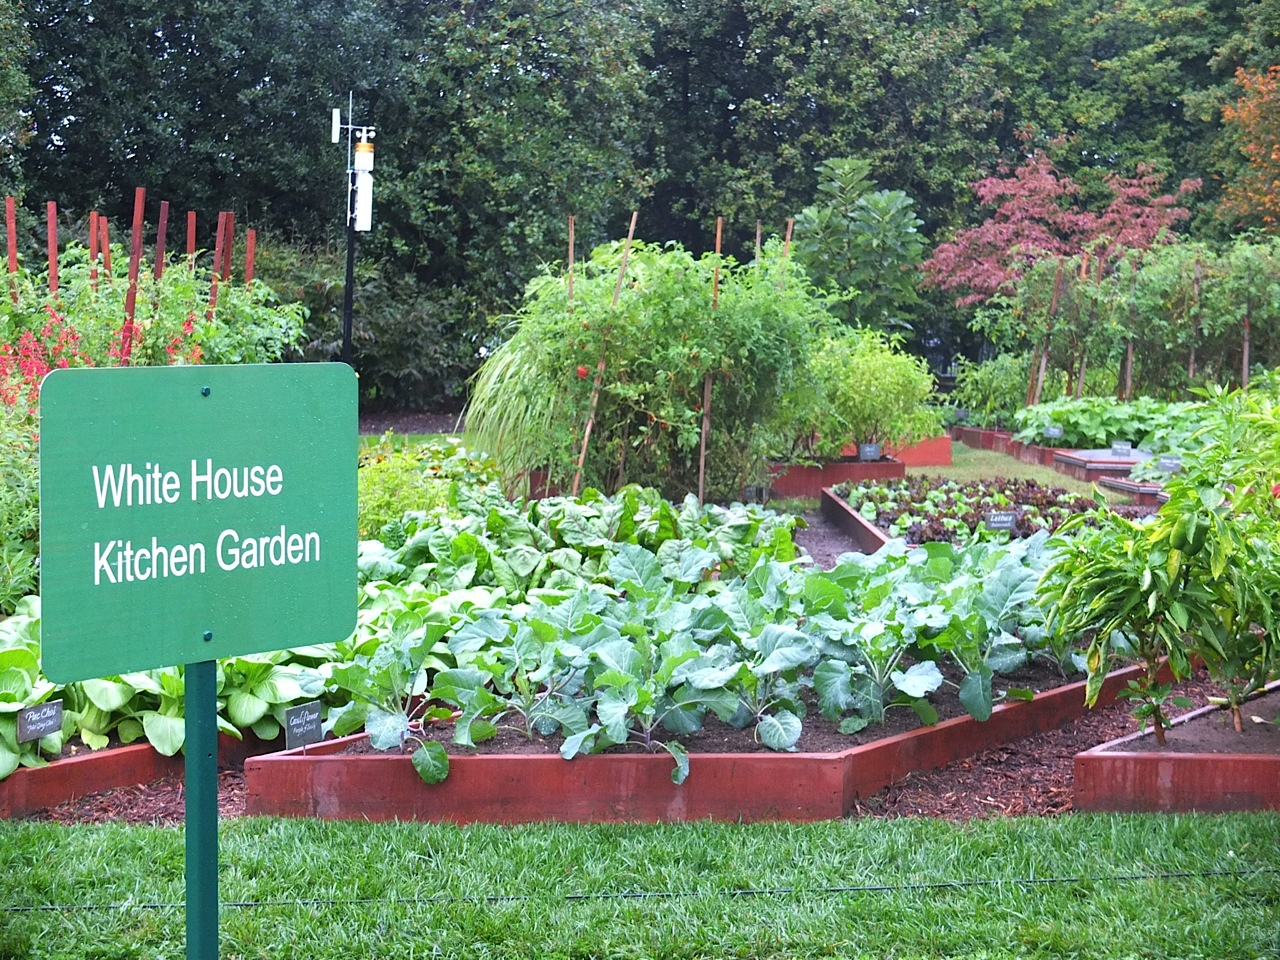 White House Kitchen Garden Sandy Mckelveys Invitation To The White House Garden Highlands